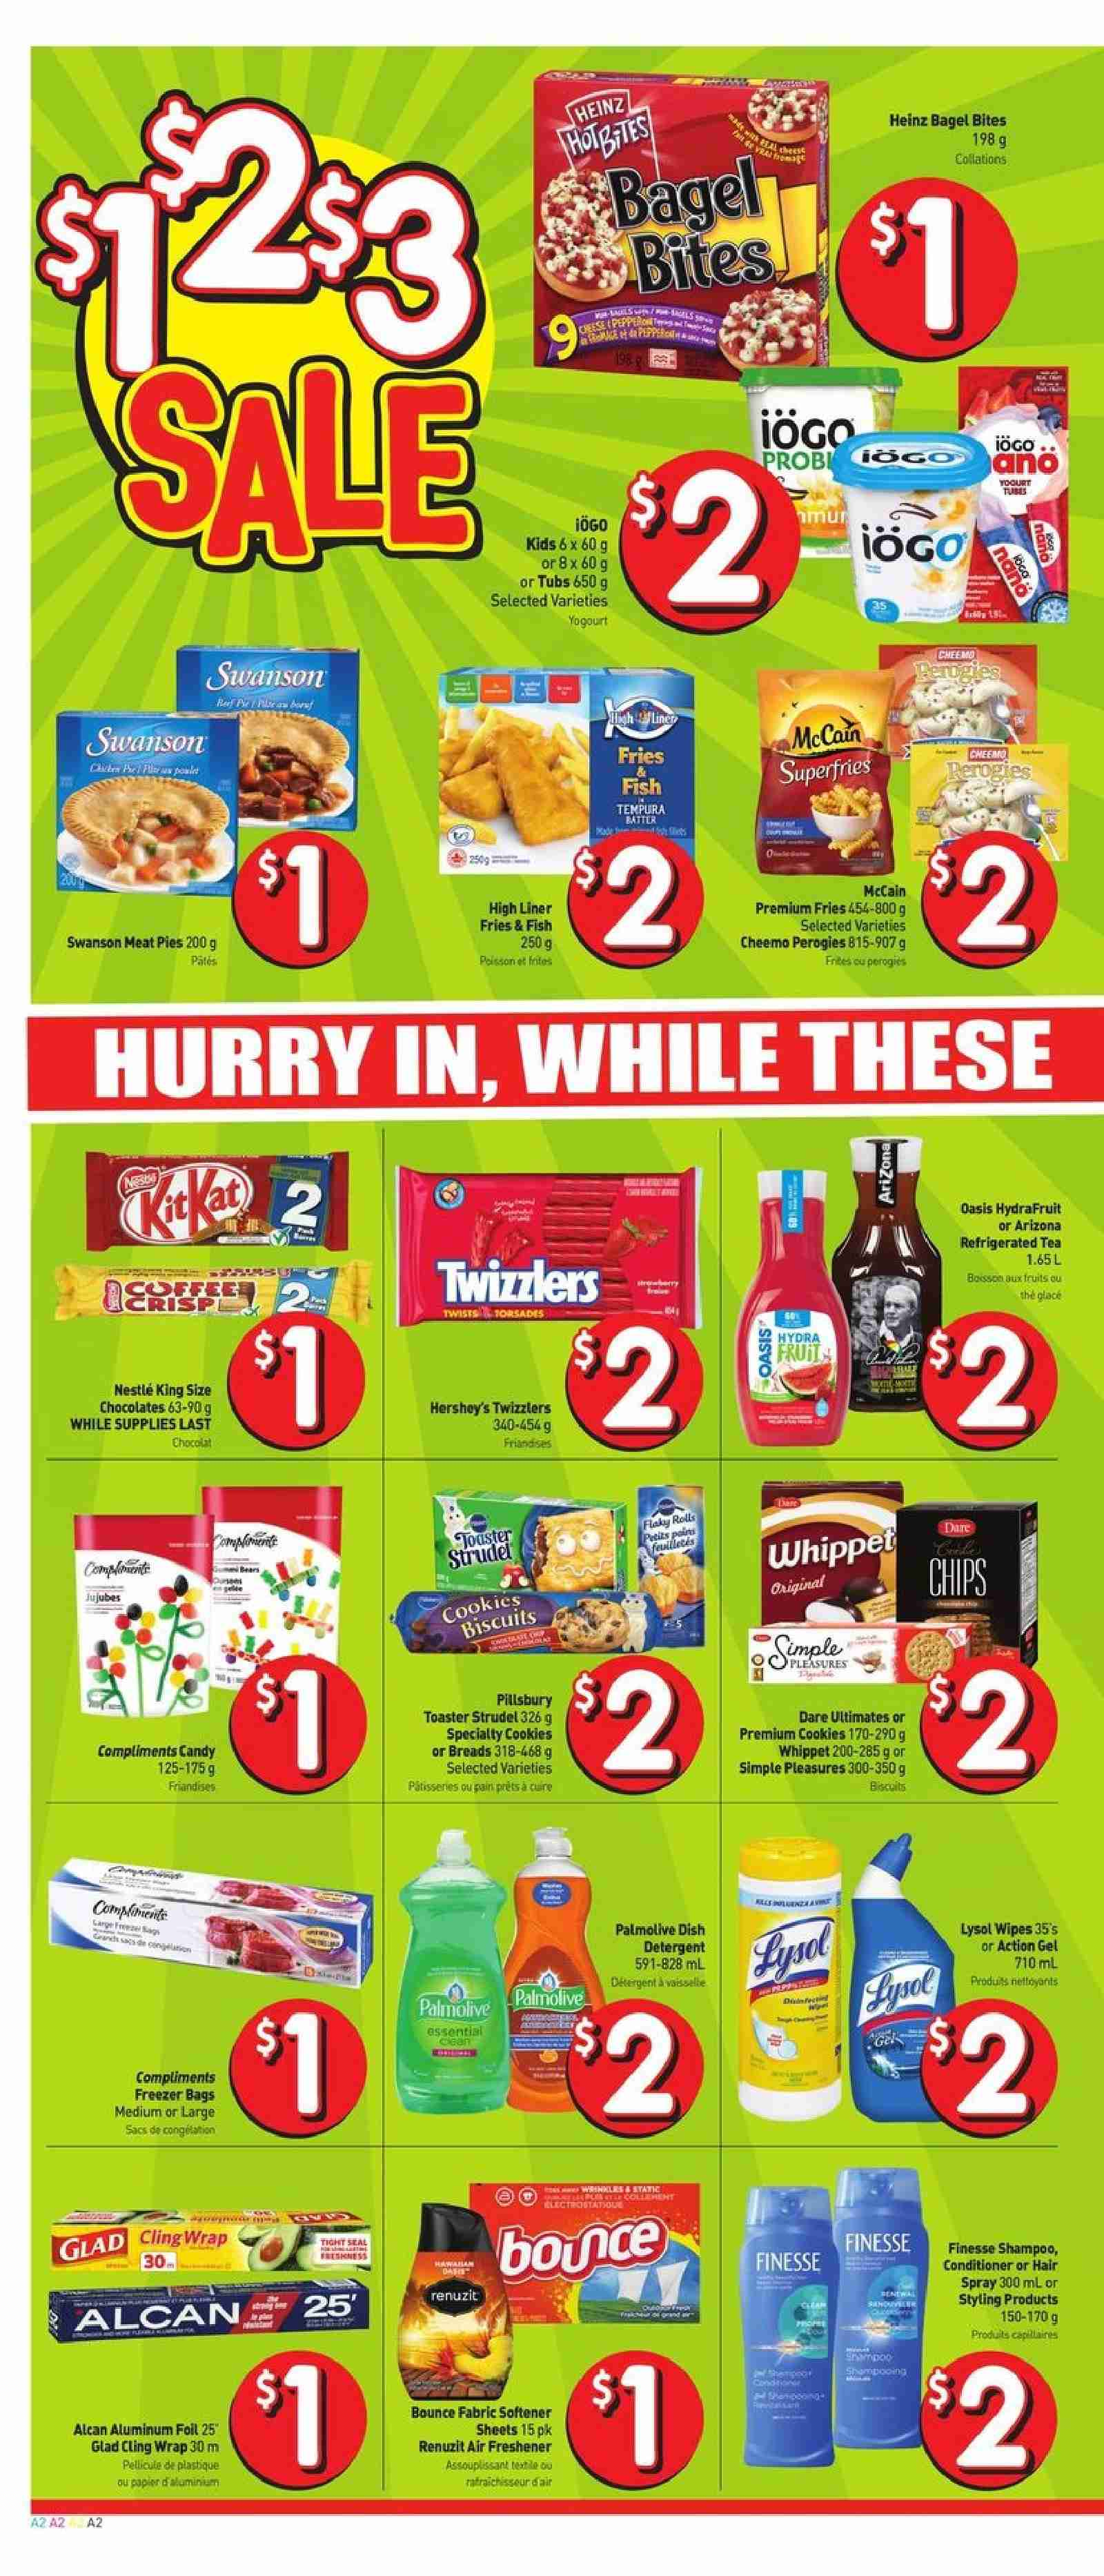 FreshCo. Flyer  - July 26, 2018 - August 01, 2018. Page 2.